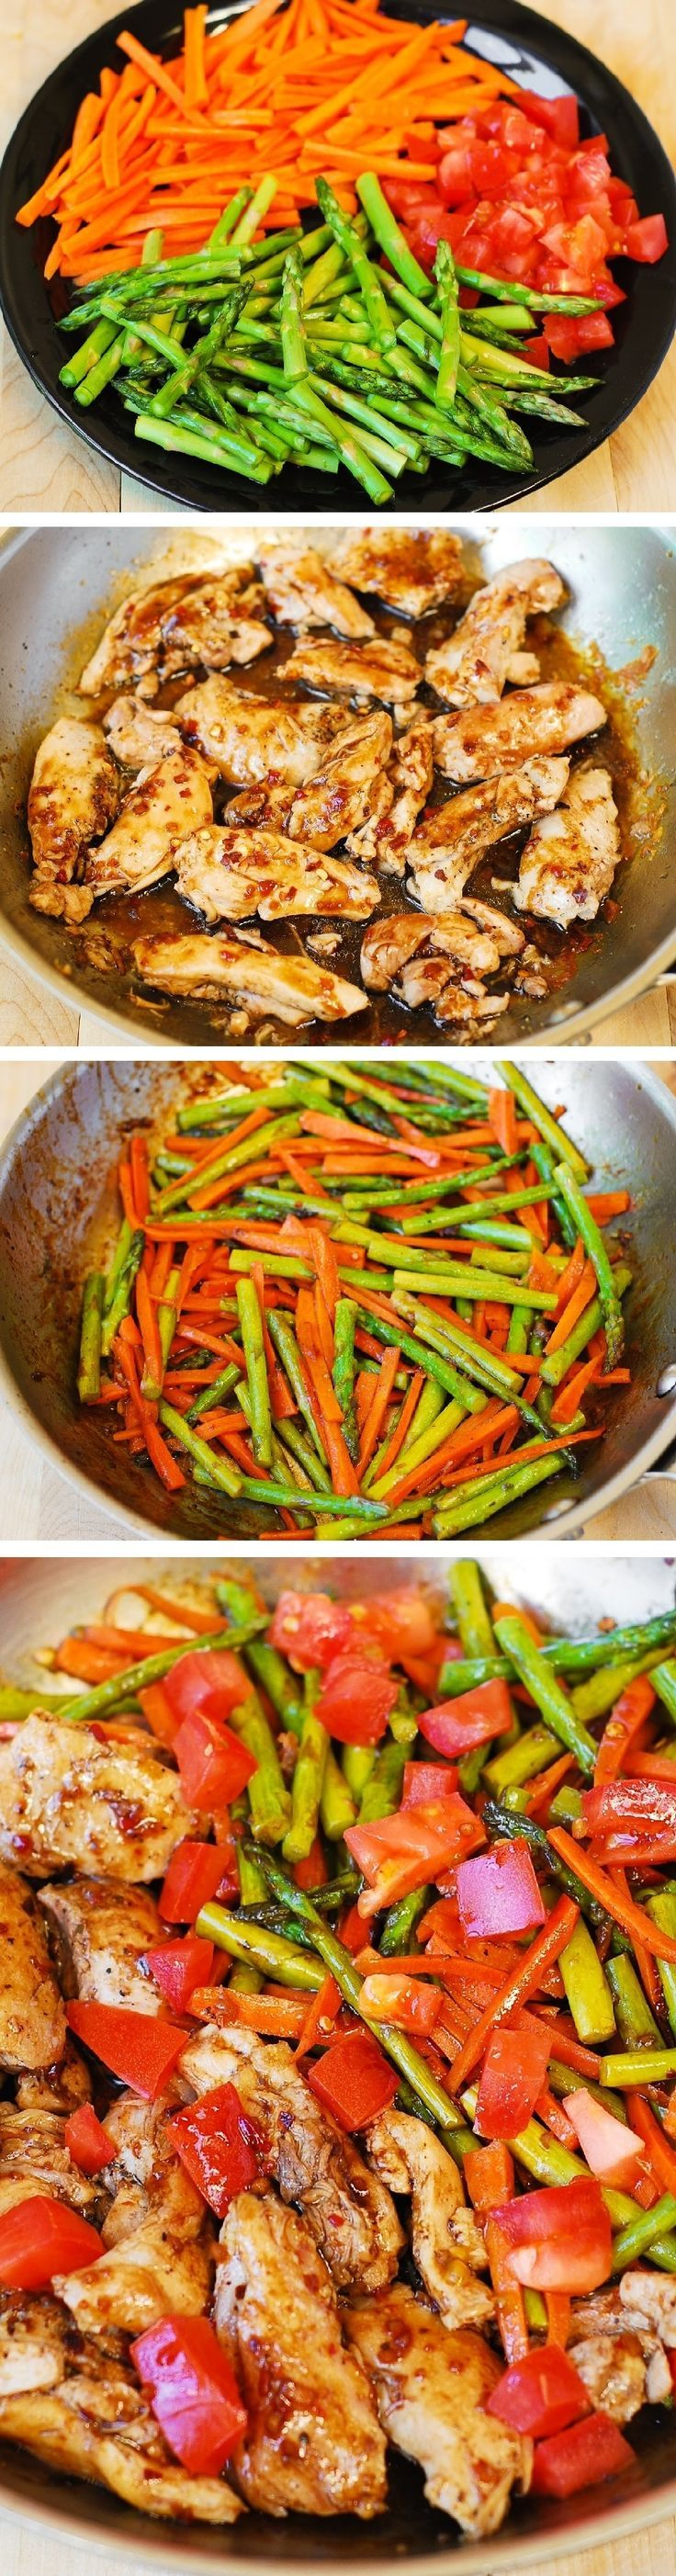 Balsamic Chicken with Asparagus and Tomatoes by bhg: Delicious, healthy, low fat, low cholesterol, low calorie meal, packed with fiber (vegetables) and protein (chicken).